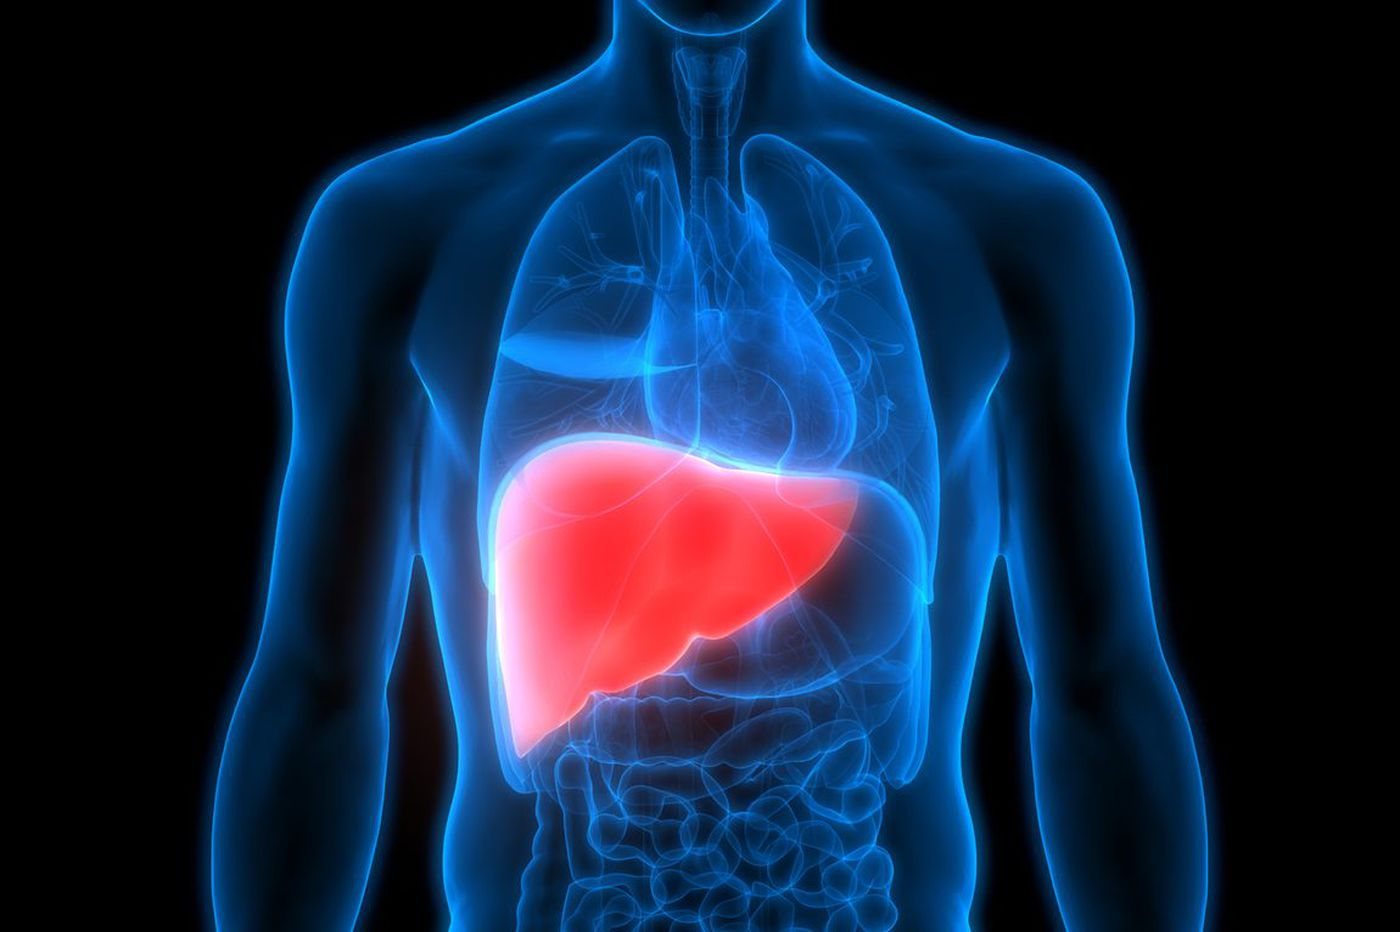 Q&A: Am I at risk for fatty liver disease?